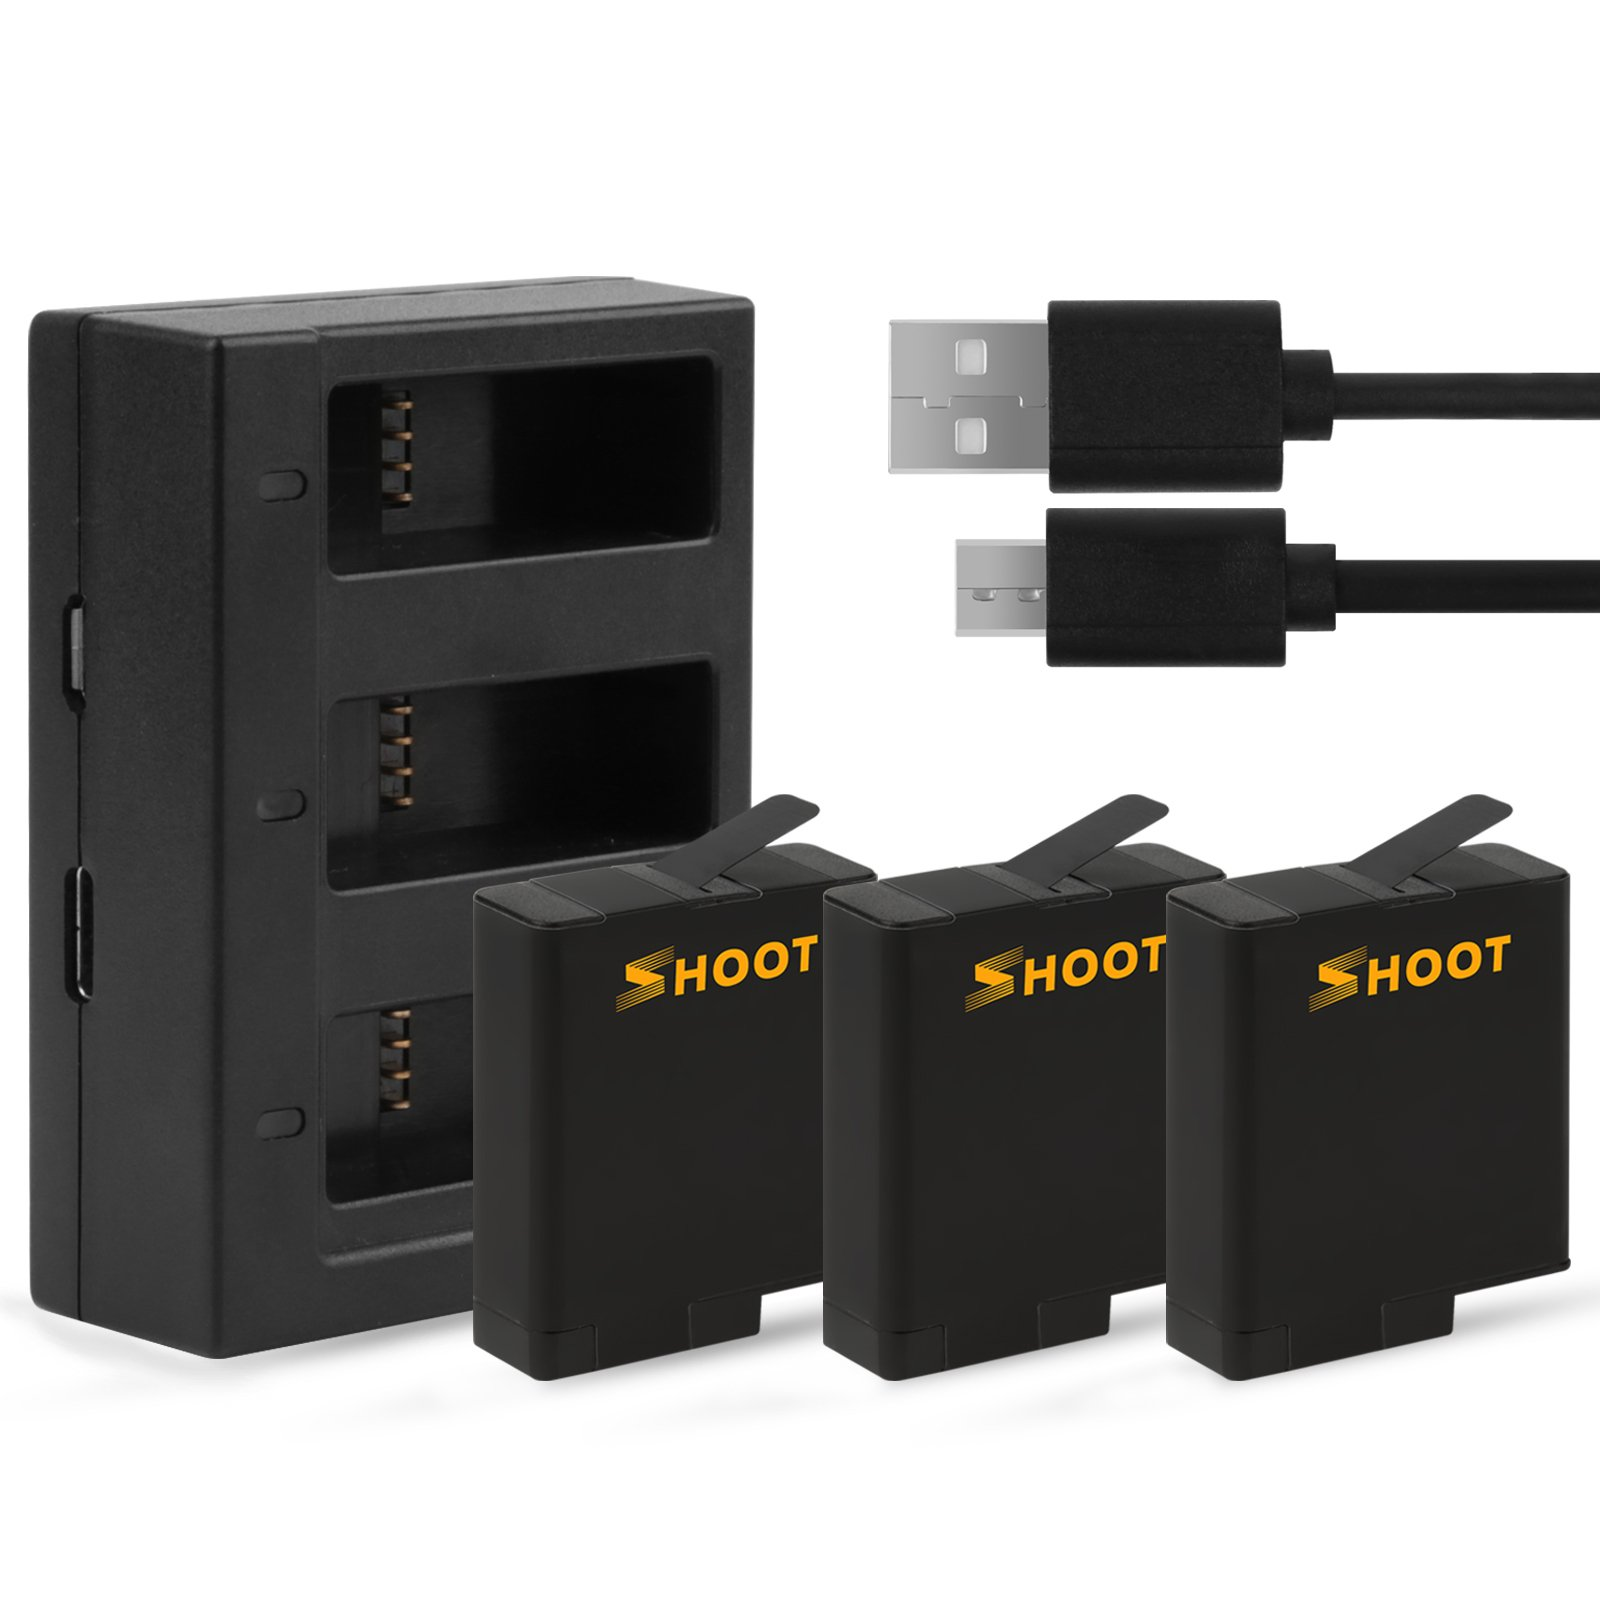 SHOOT 1220mAh 3-Pack Replacement Battery USB Charger for GoPro HERO 6/ HERO 5/HERO(2018) Black Accessories (Compatible with Firmware v02.60,v02.51,v02.01, v02.00, v01.57 and v01.55 )